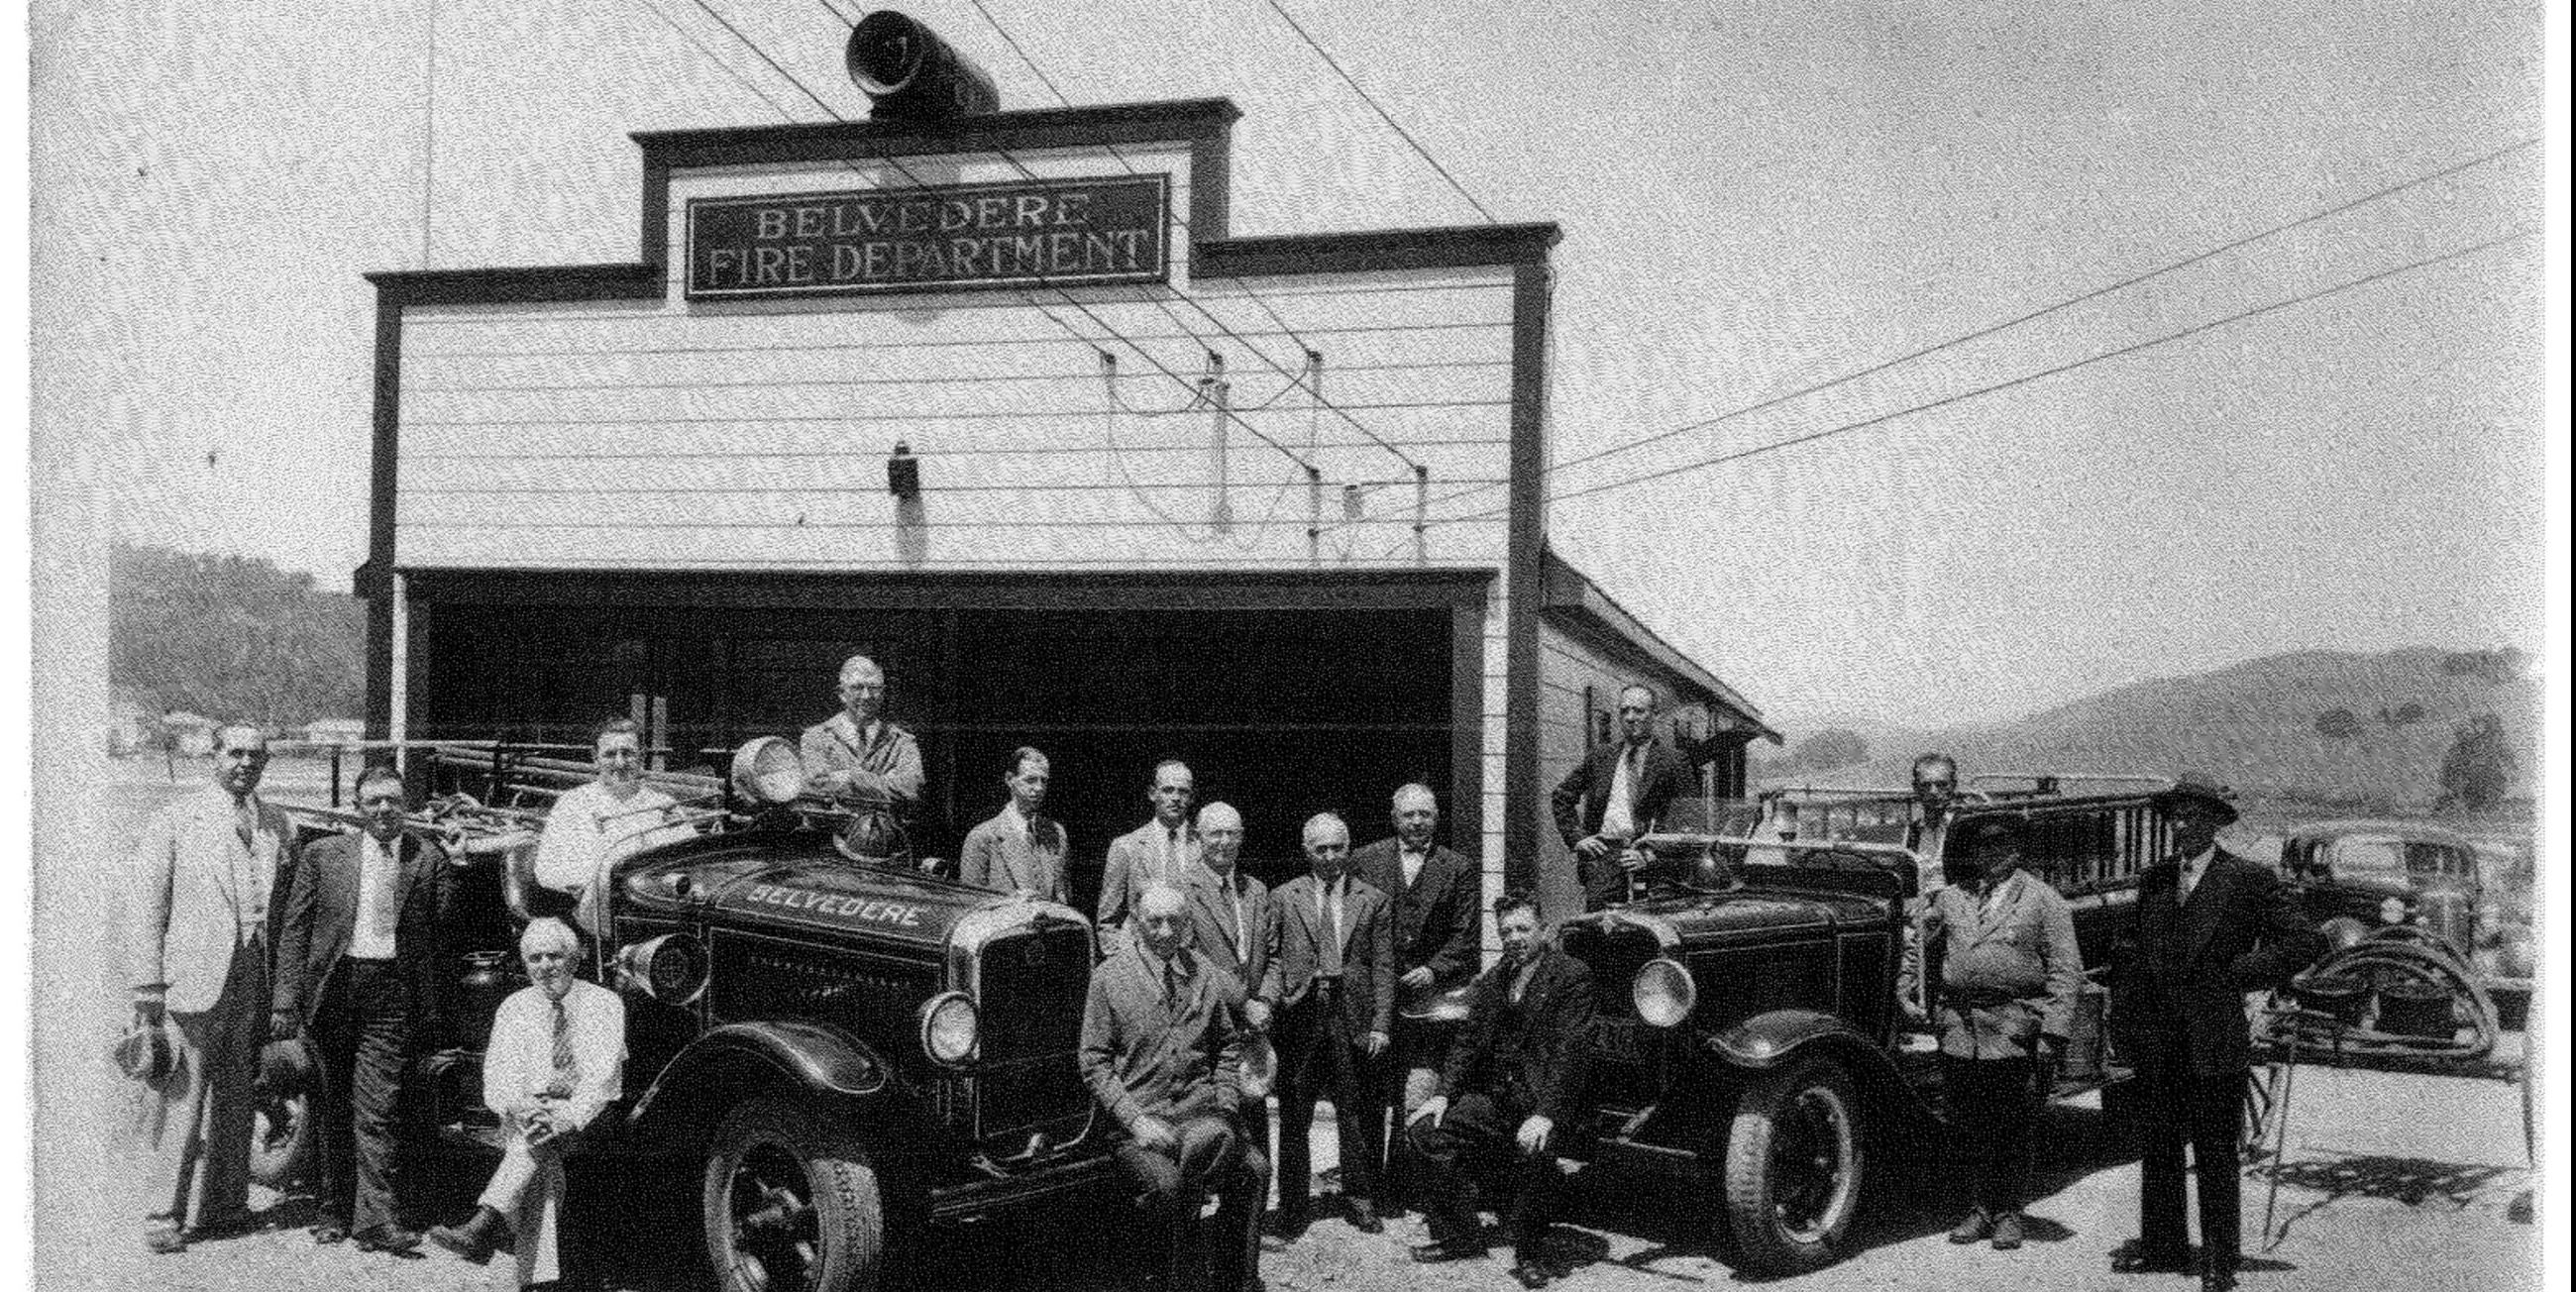 Belvedere Volunteer Fire Department